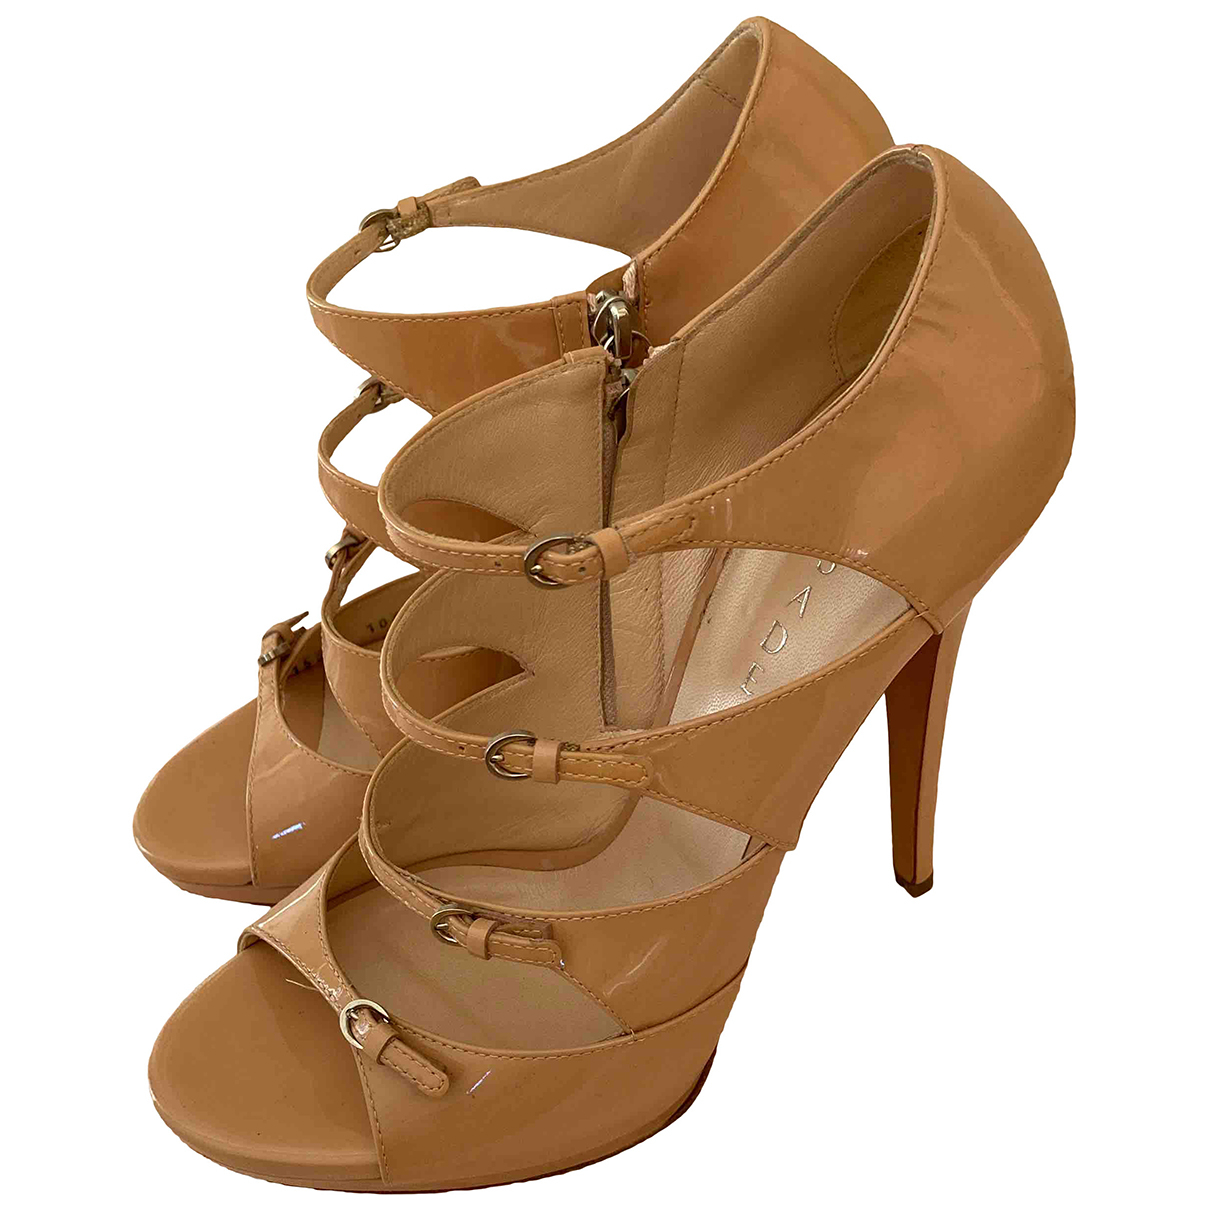 Casadei N Patent leather Heels for Women 40 EU